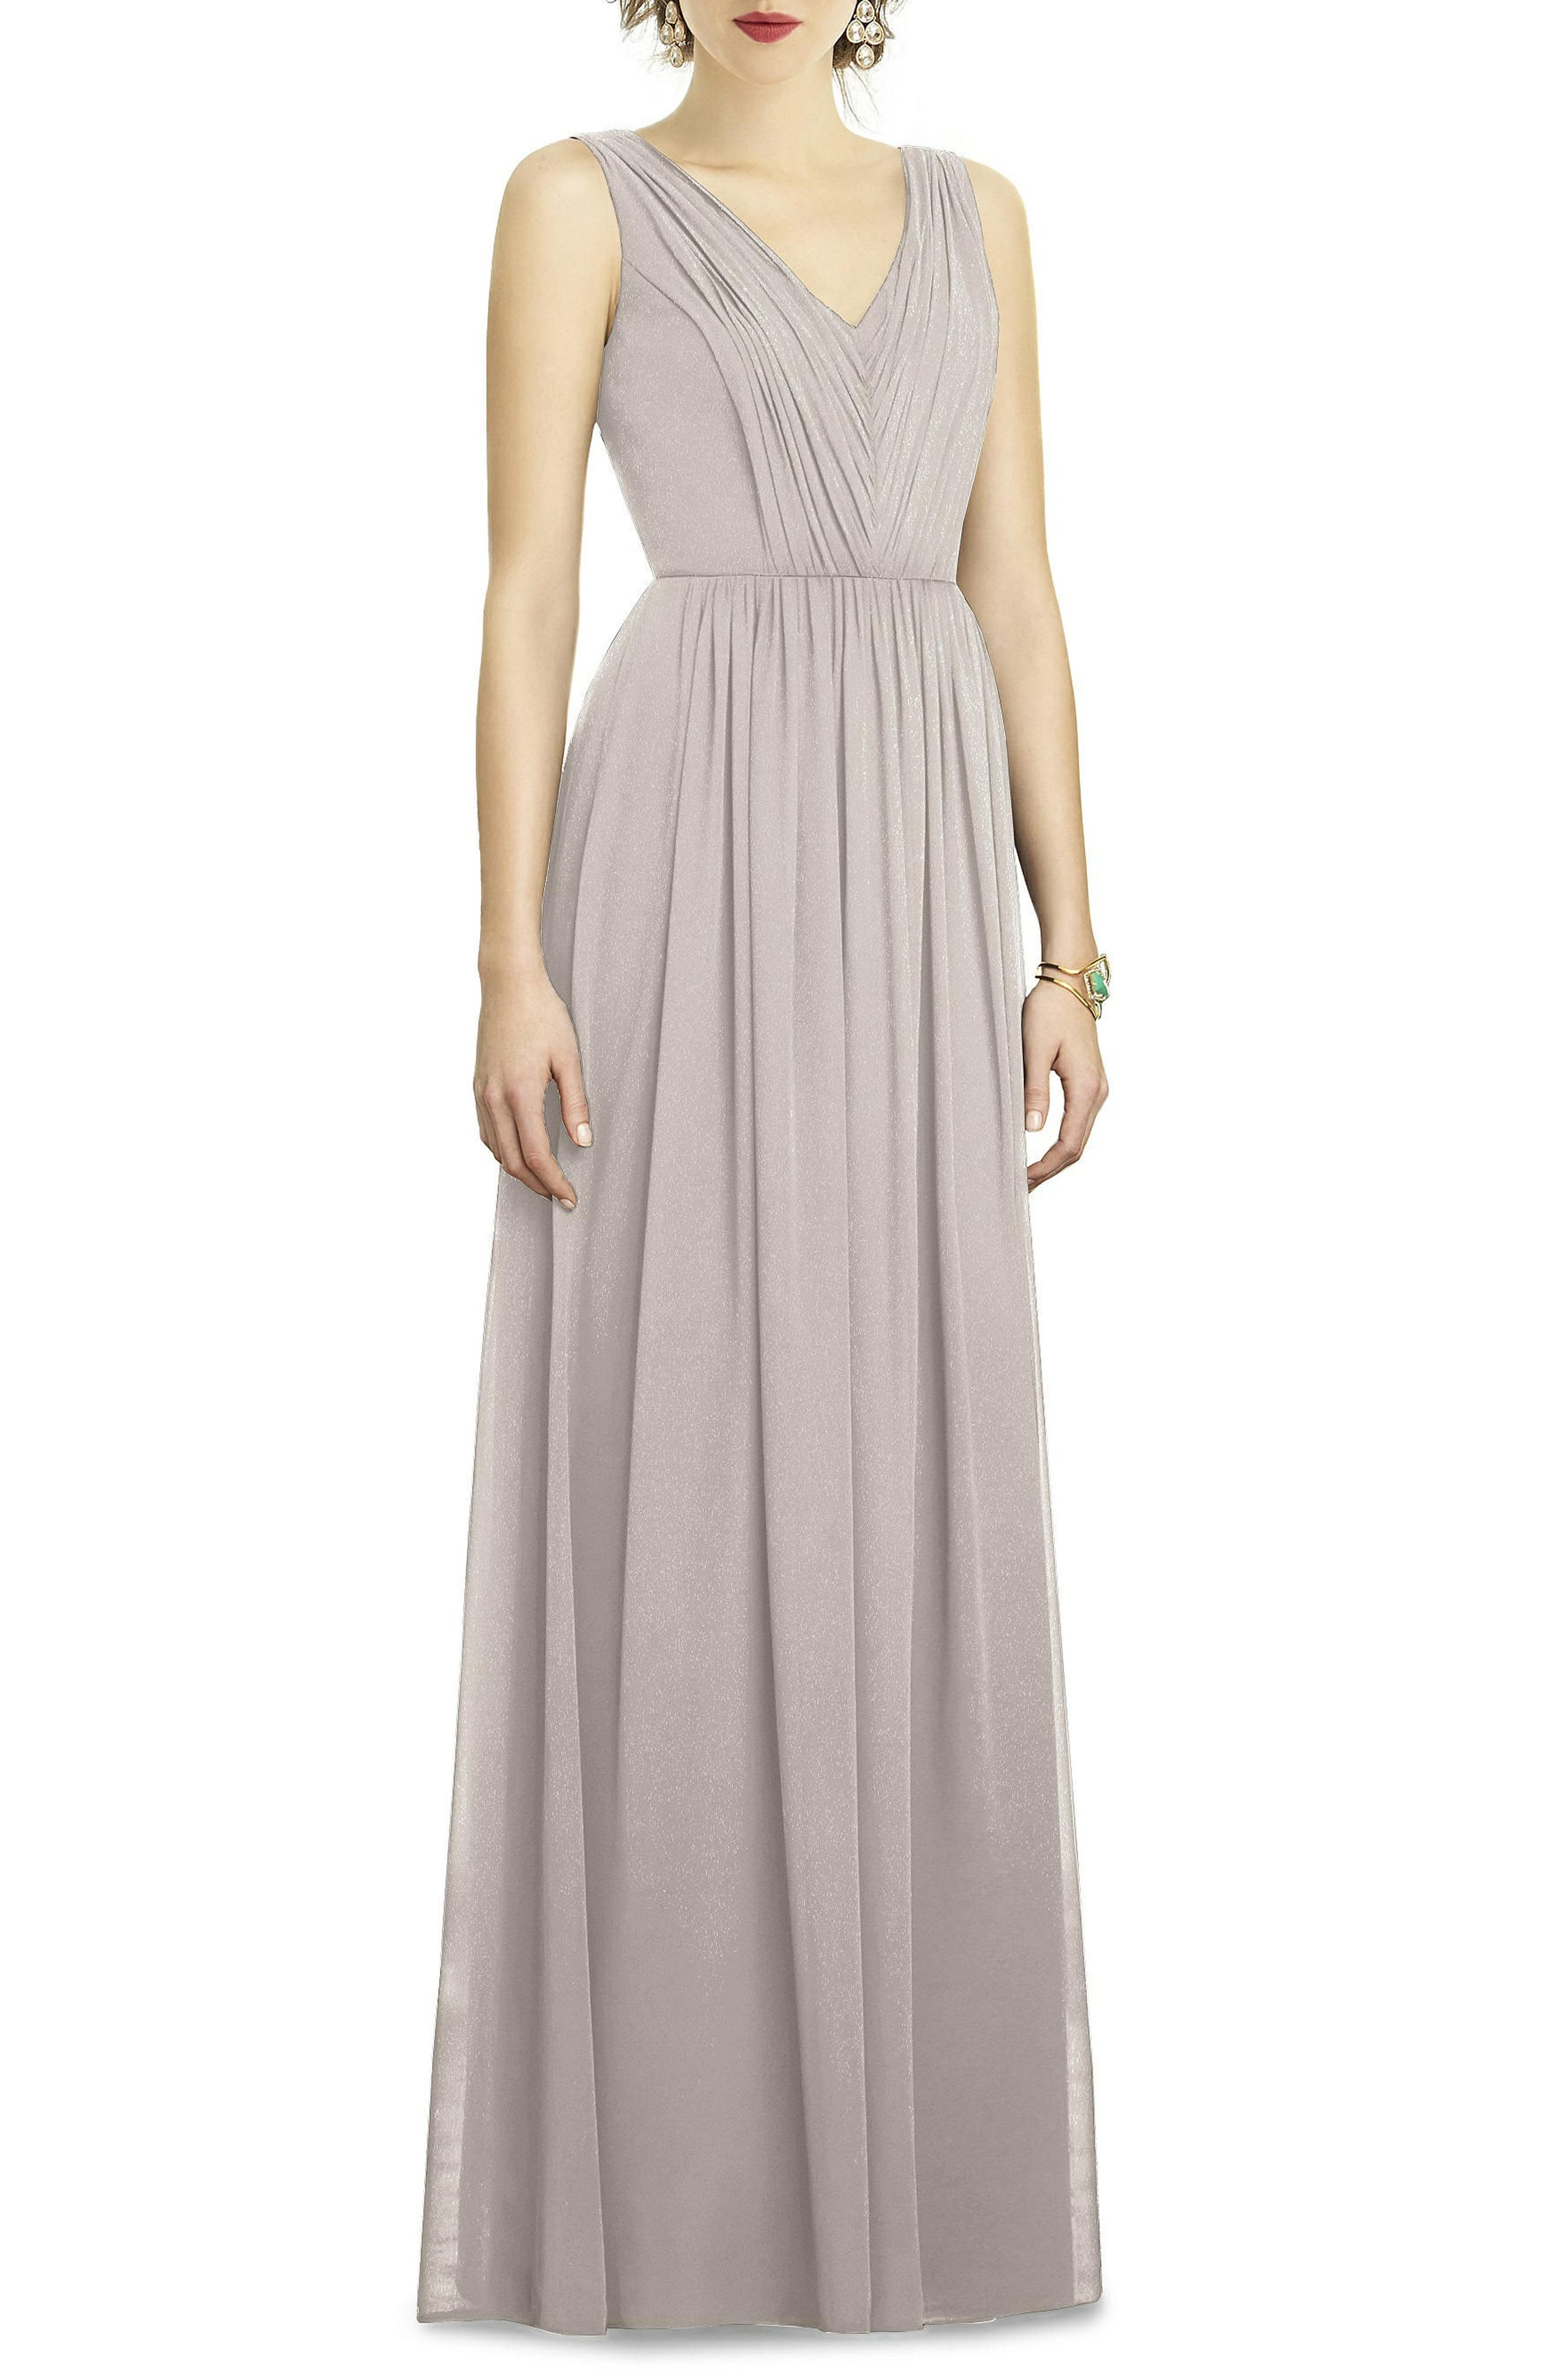 Shirred Shimmer Chiffon Gown,                             Main thumbnail 1, color,                             TAUPE SILVER